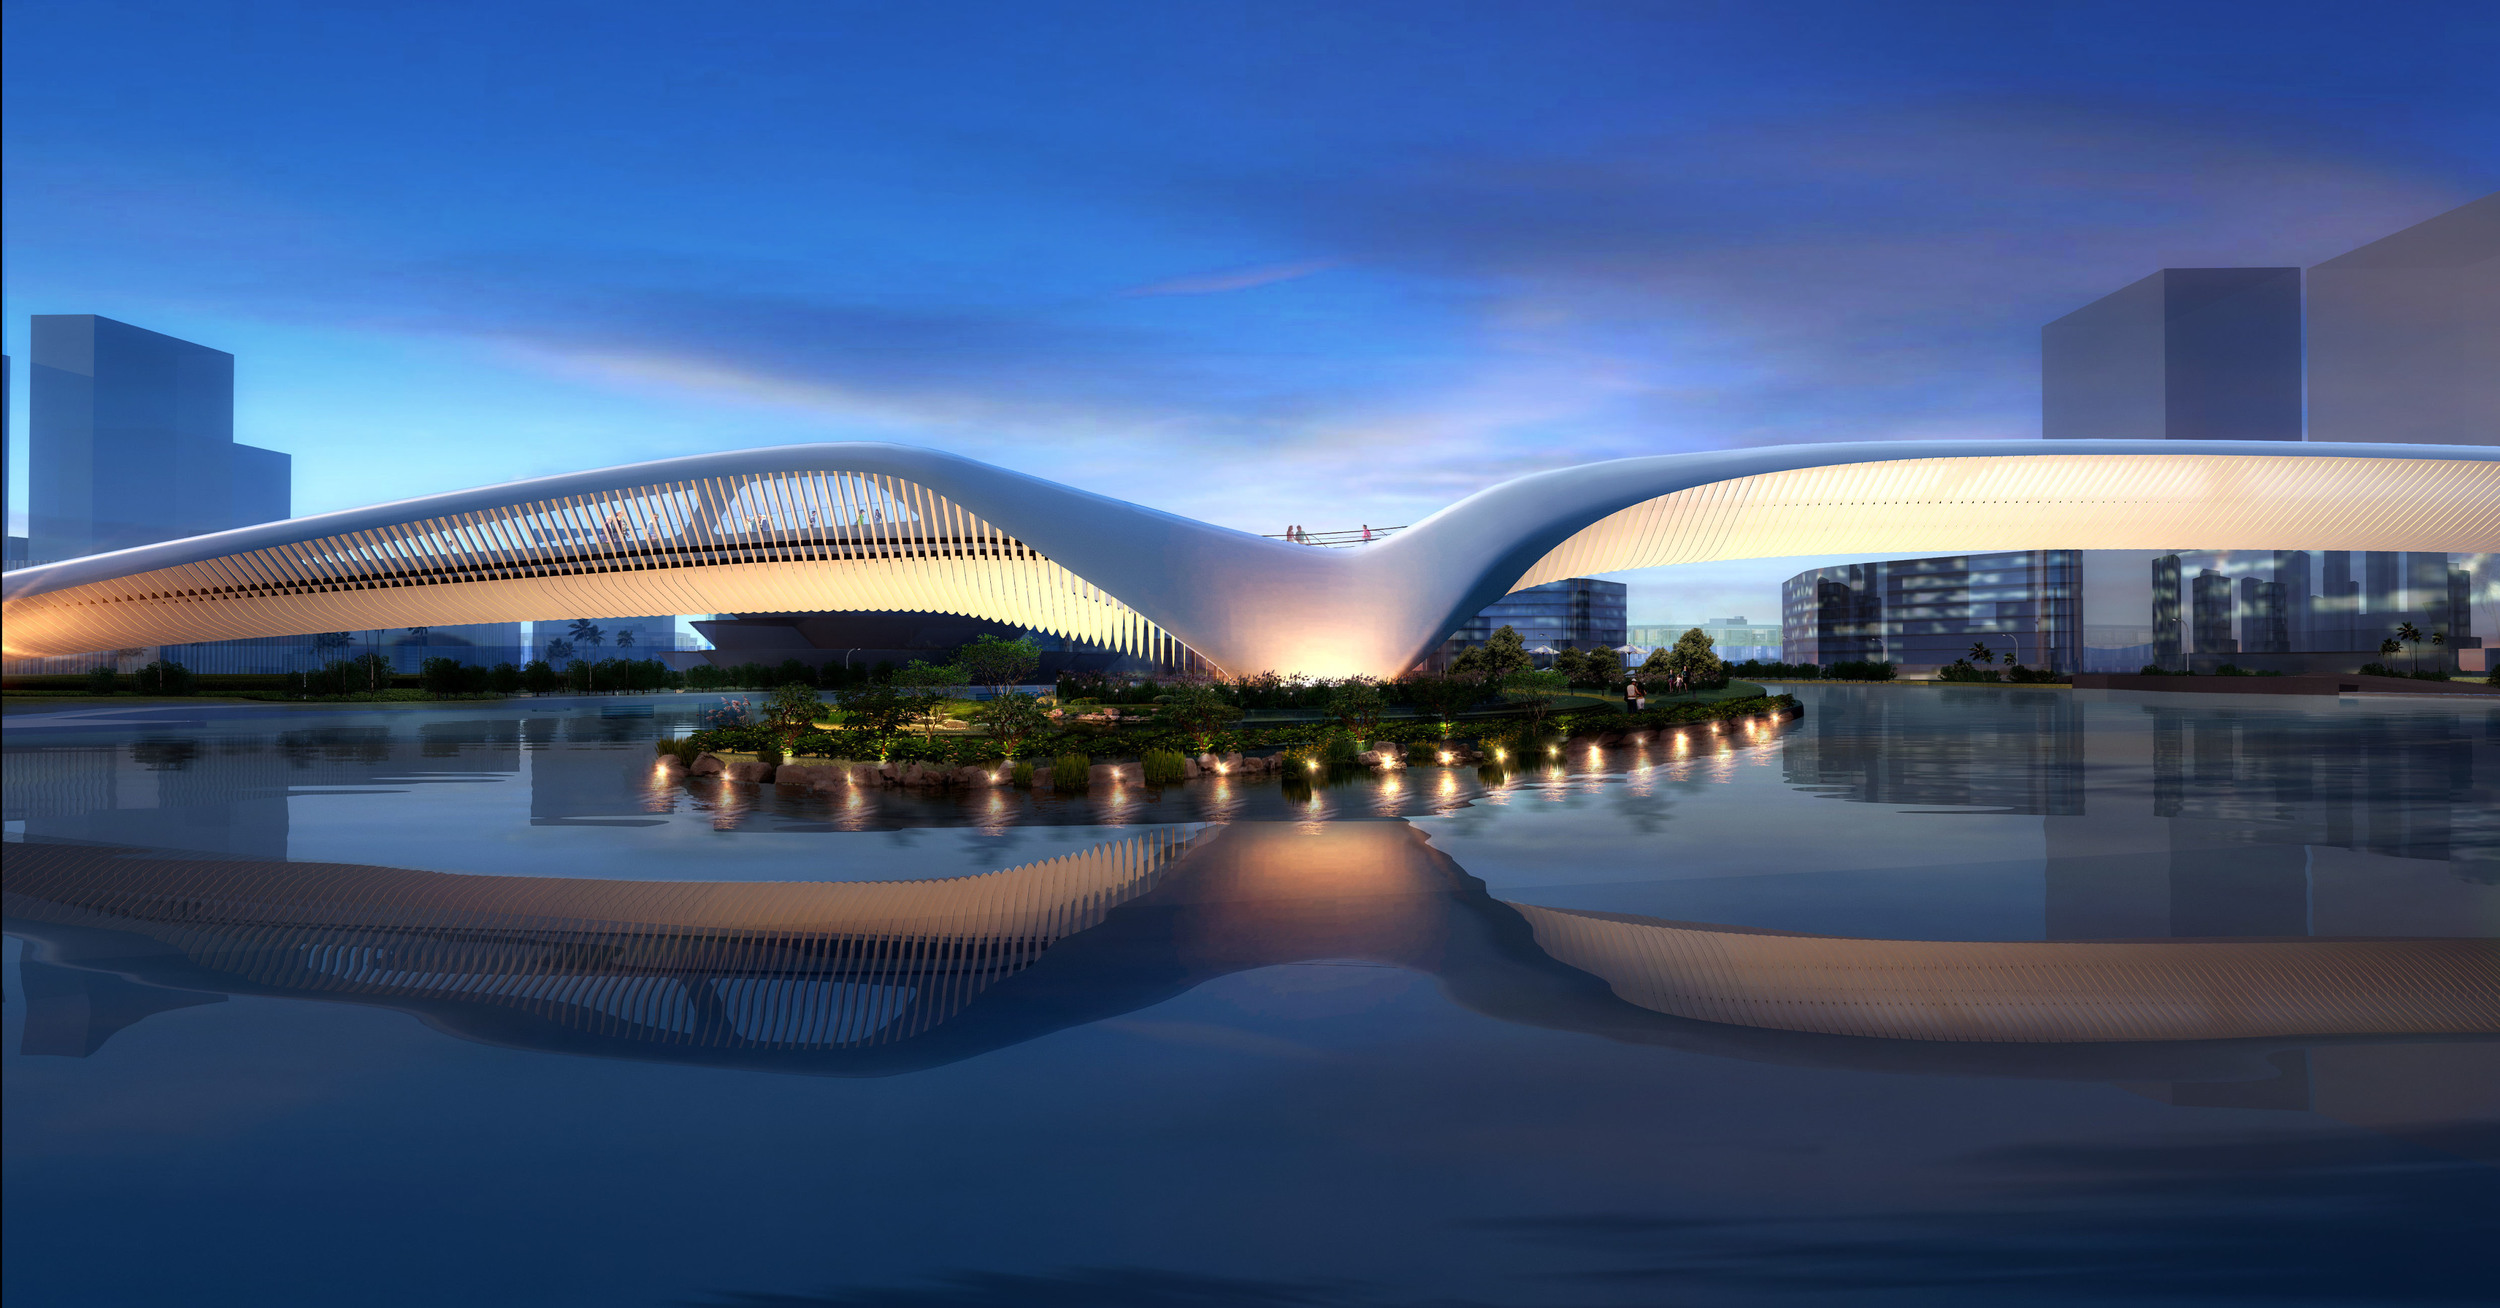 1685_HANGZHOU_FOOTBRIDGE_bookLet_ALL-36.jpg